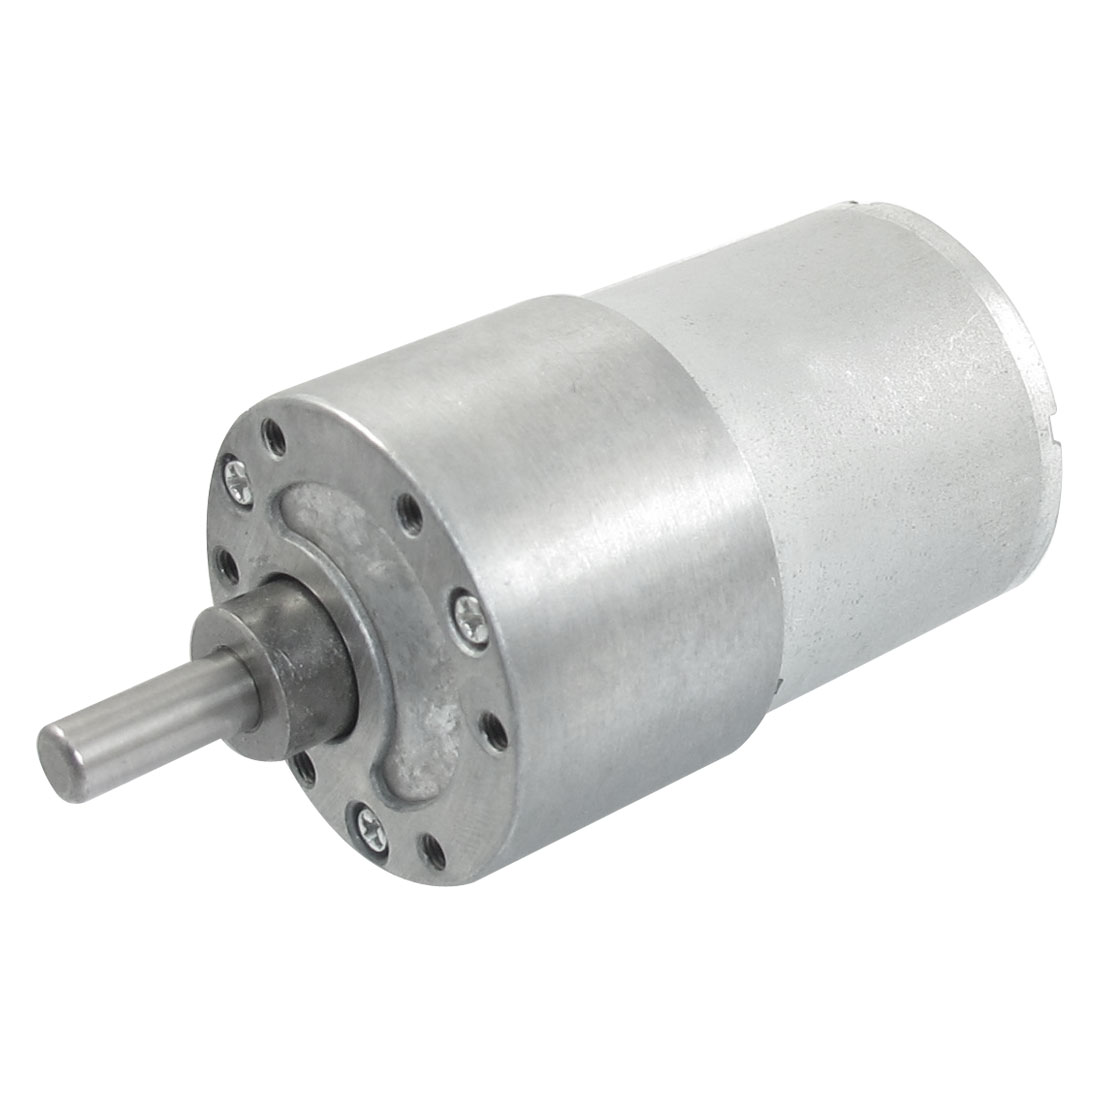 80 RPM DC 12V High Torque Gear Box Electric Speed Reduce Motor